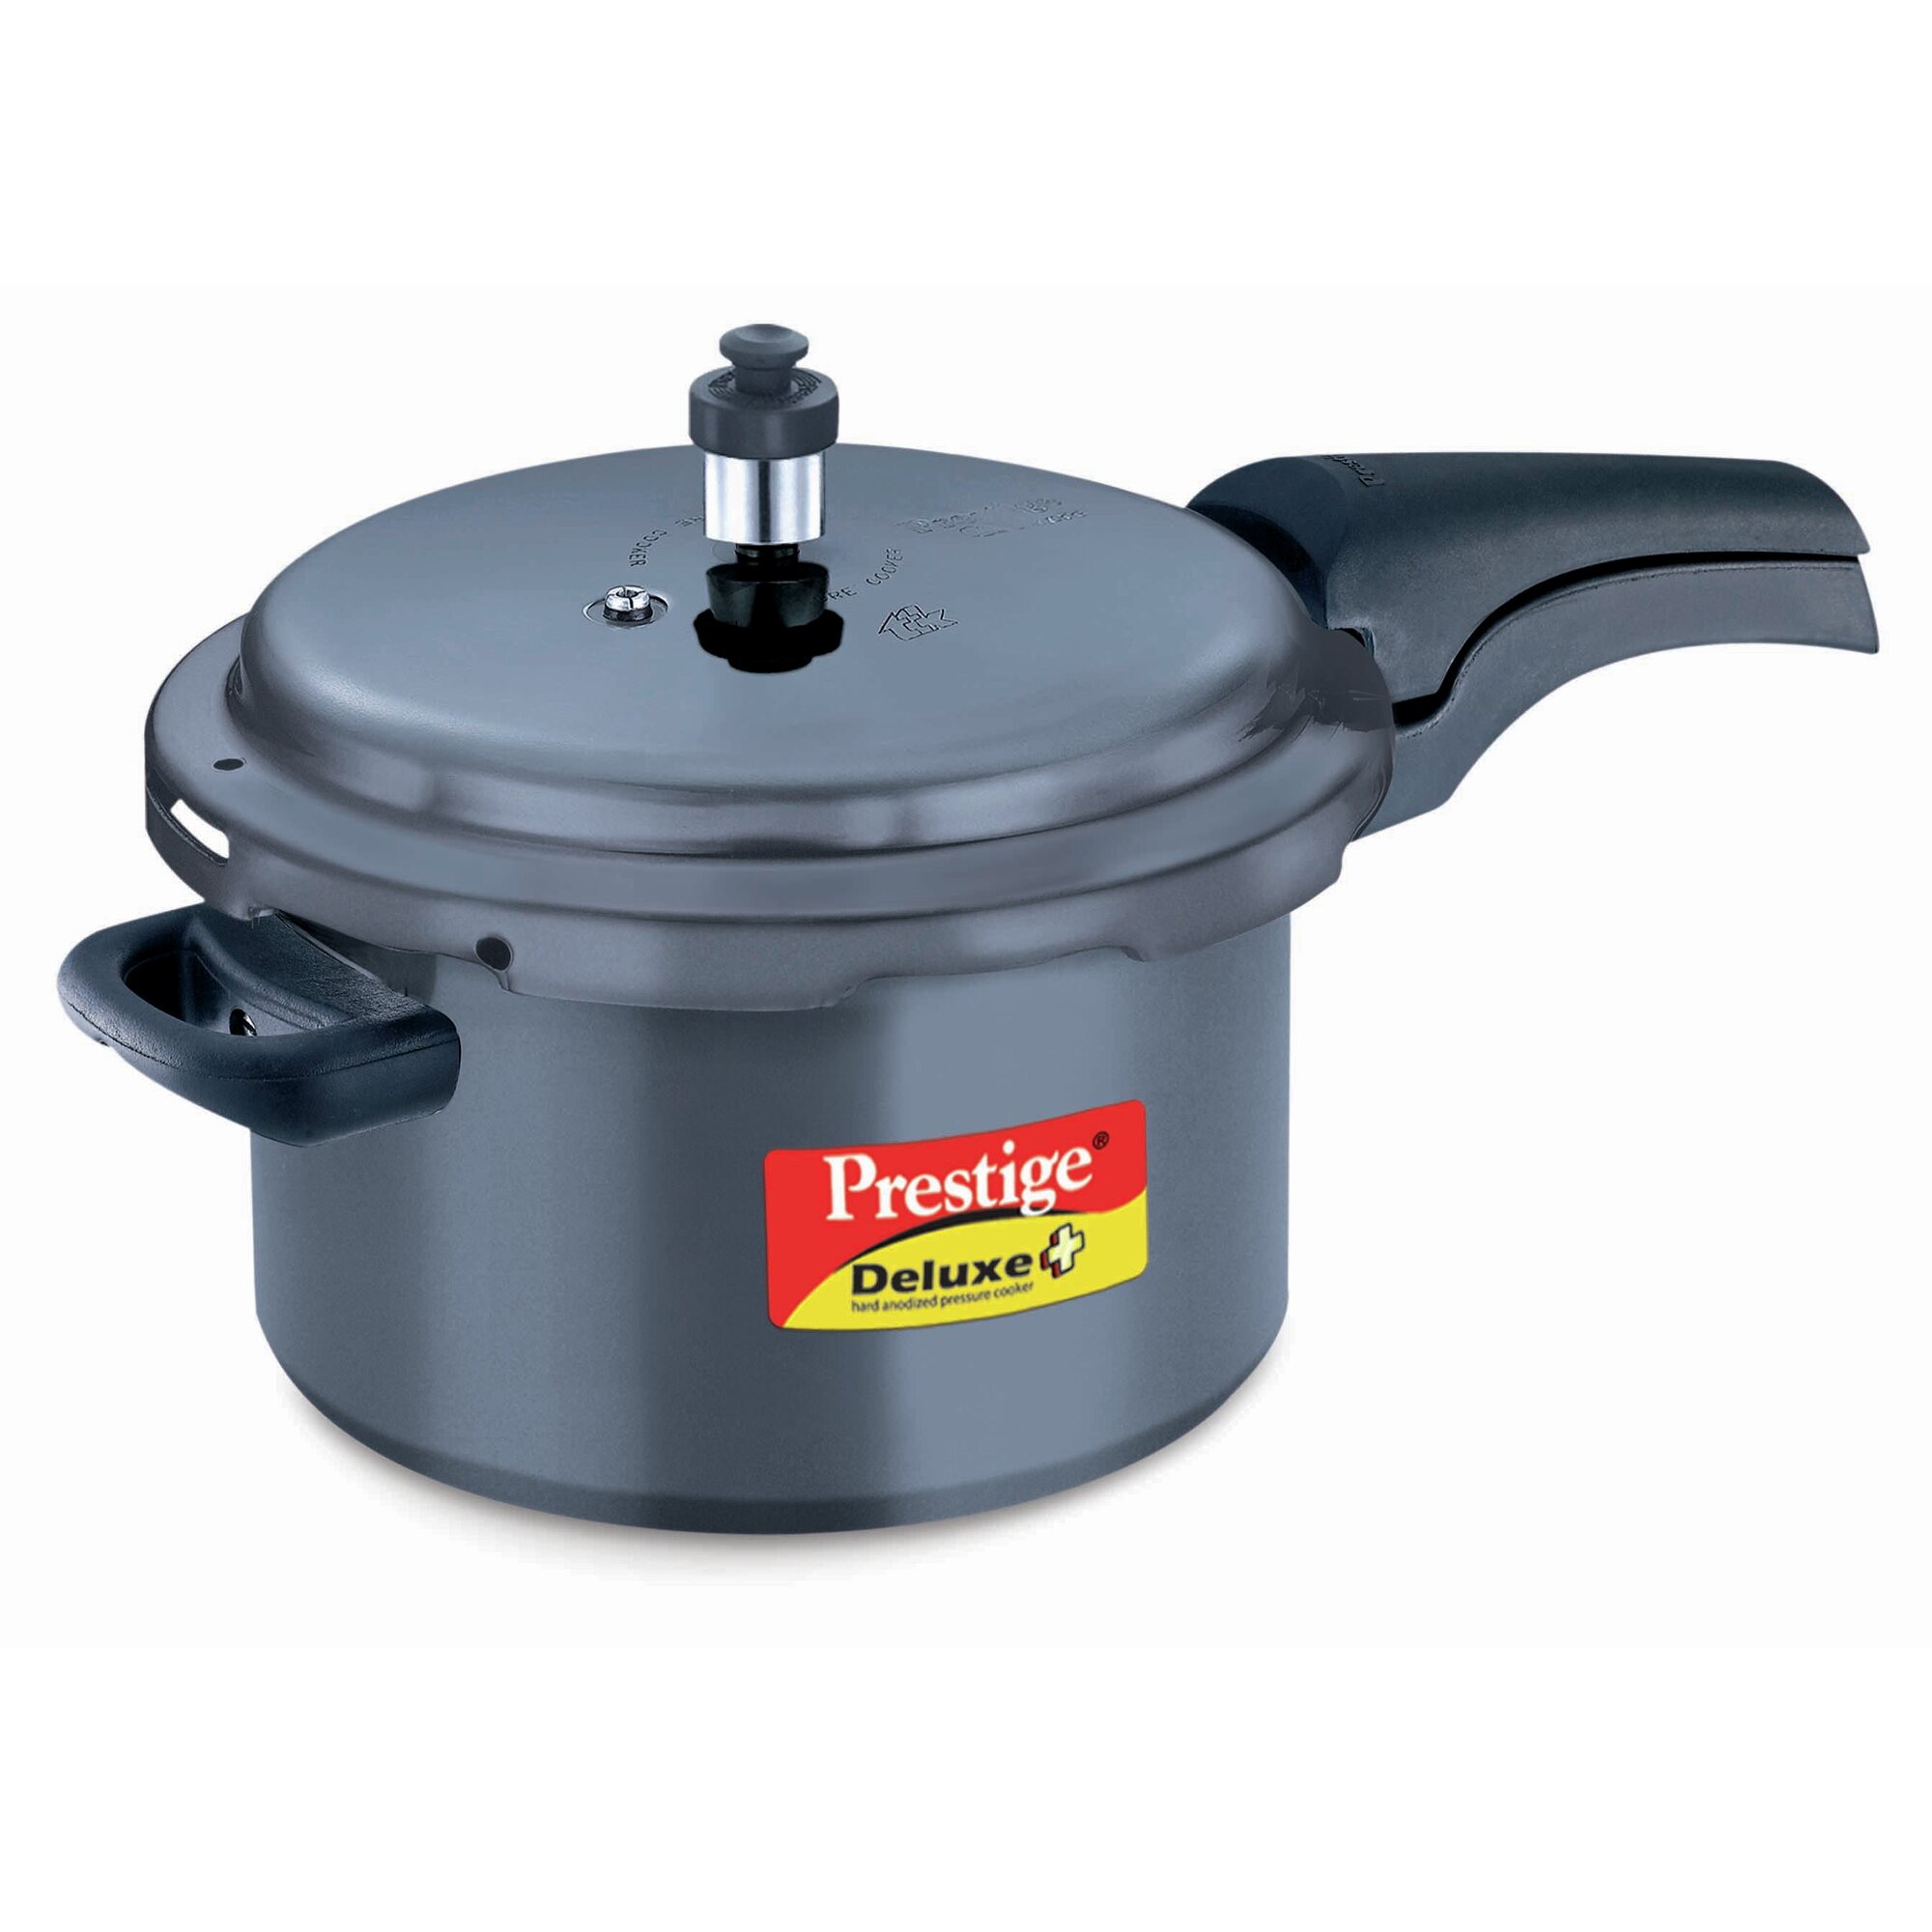 Prestige Cookers Deluxe Hard Anodized Pressure Cooker & Reviews ...